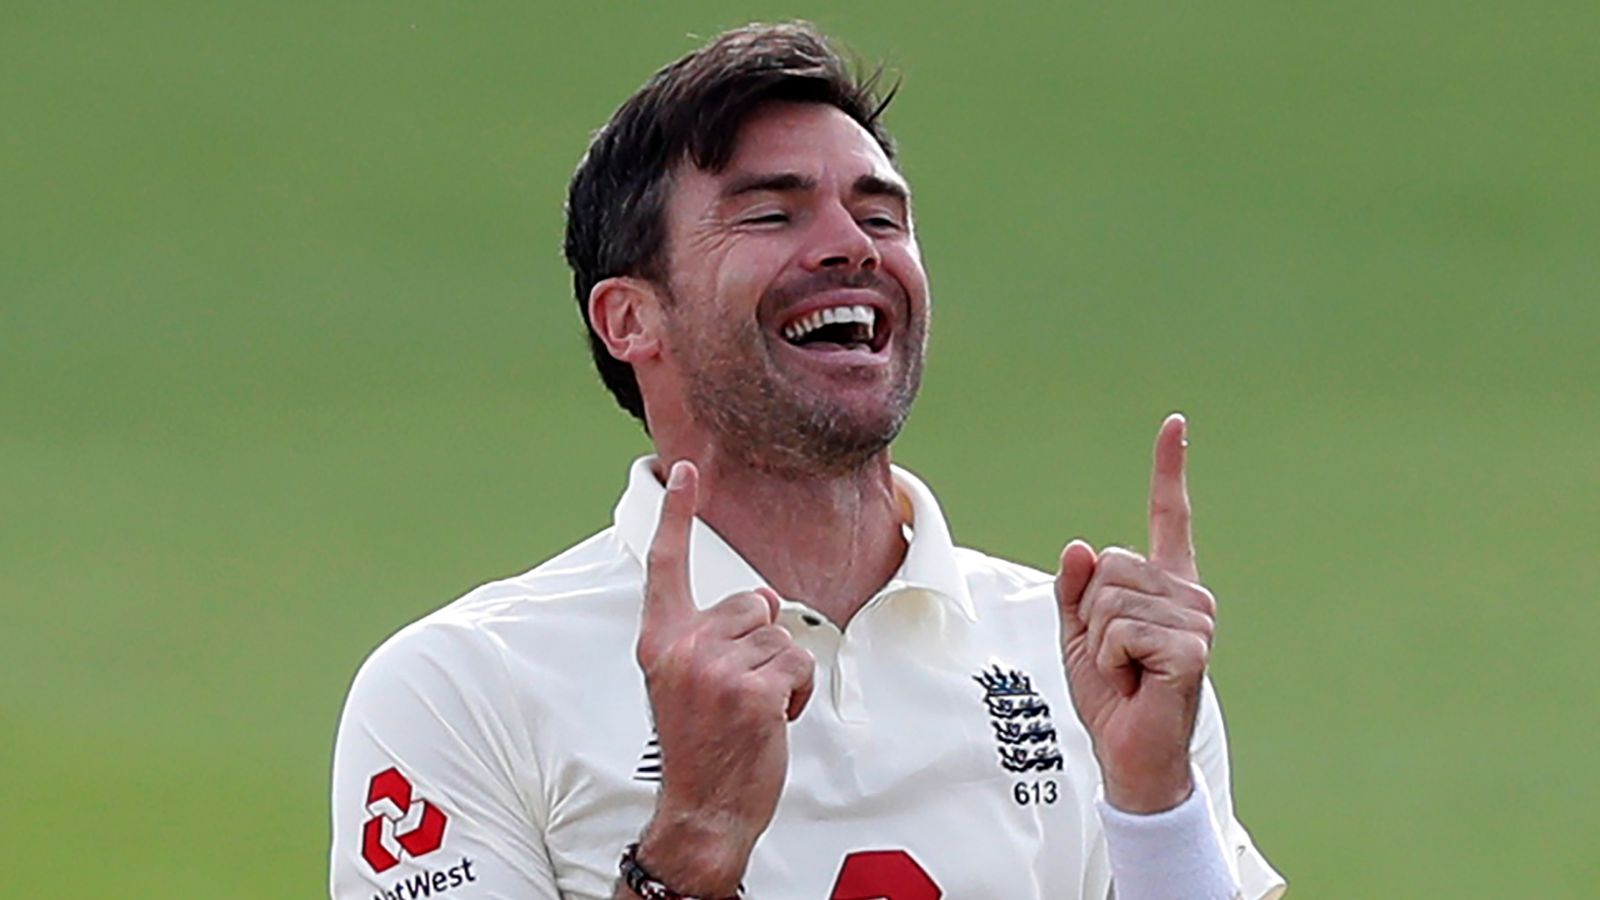 James Anderson replaces rested Stuart Broad for England's second Test against Sri Lanka